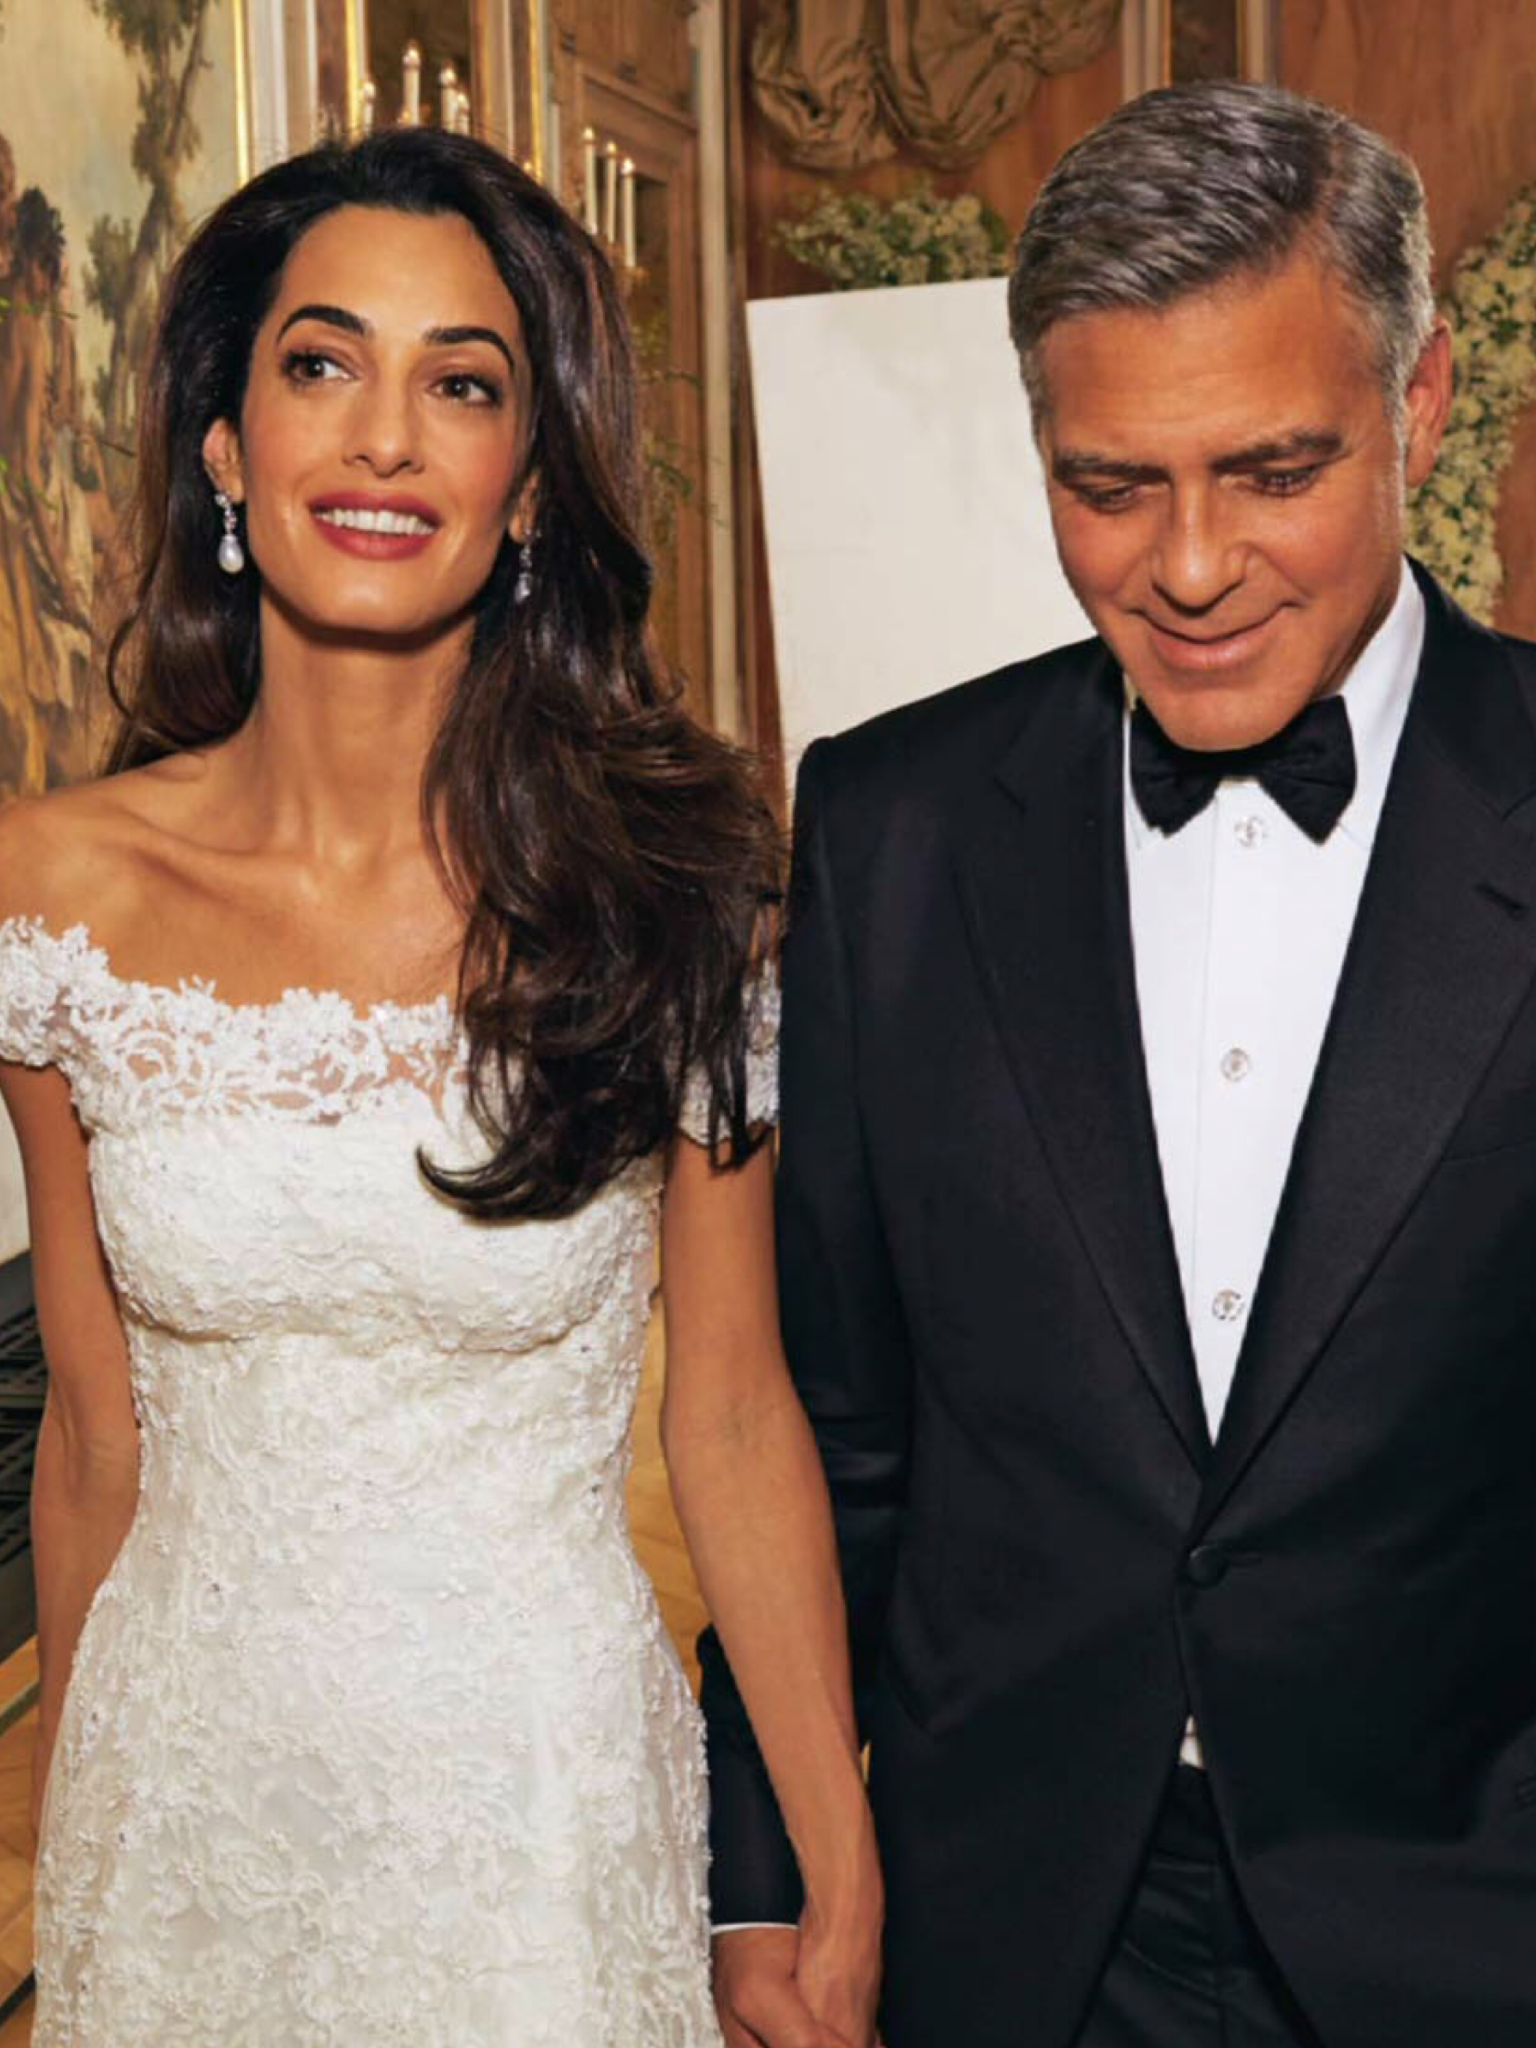 Amal Alamuddin Clooney Photos News and Videos  Just Jared